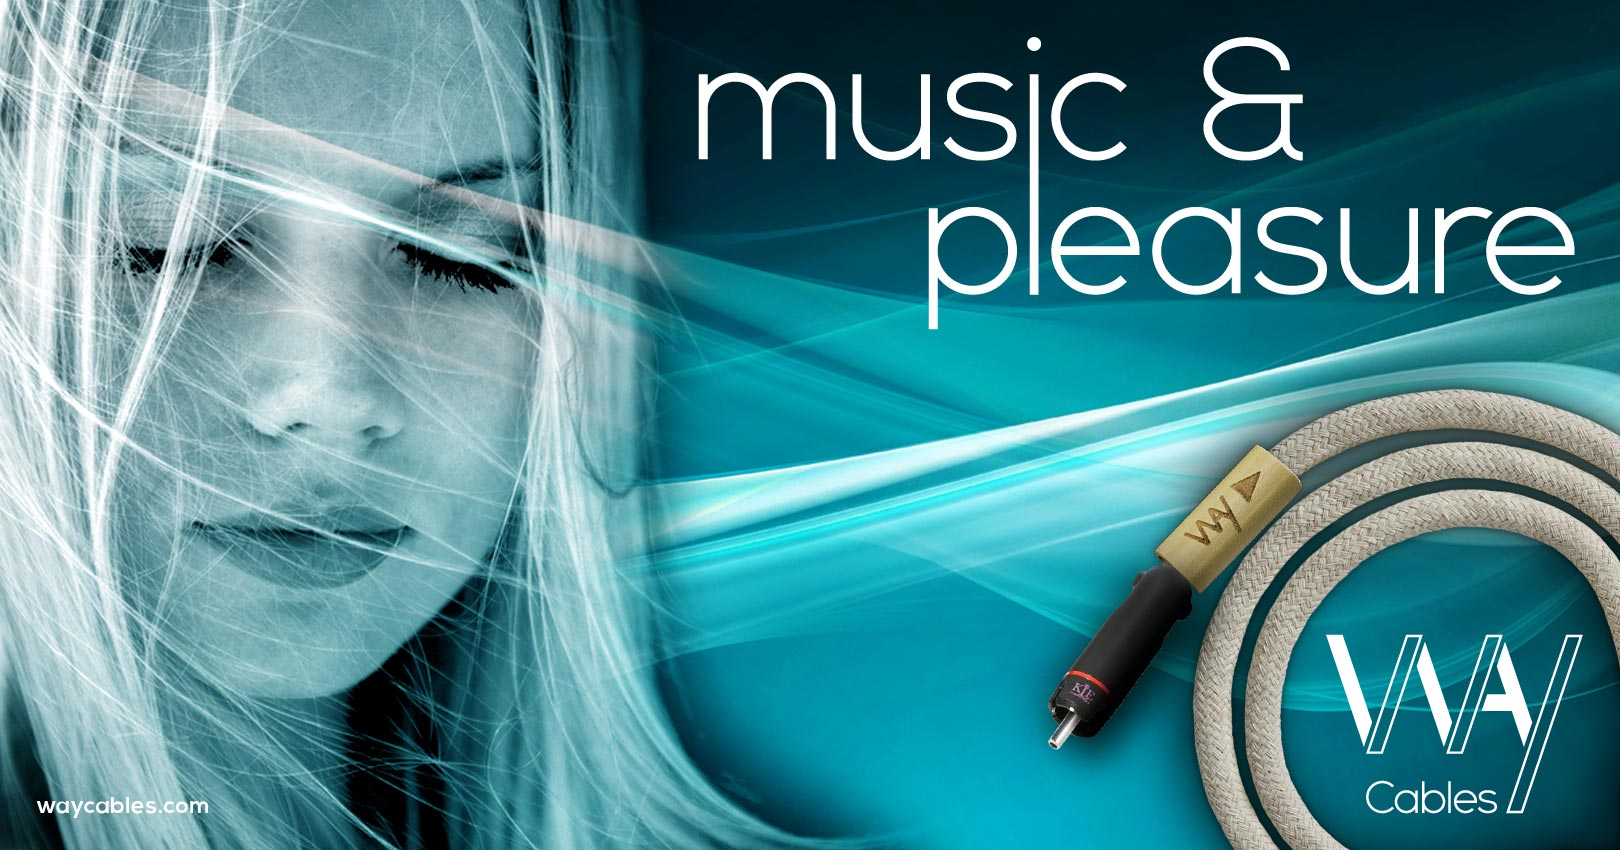 Way Cables Music and Pleasure